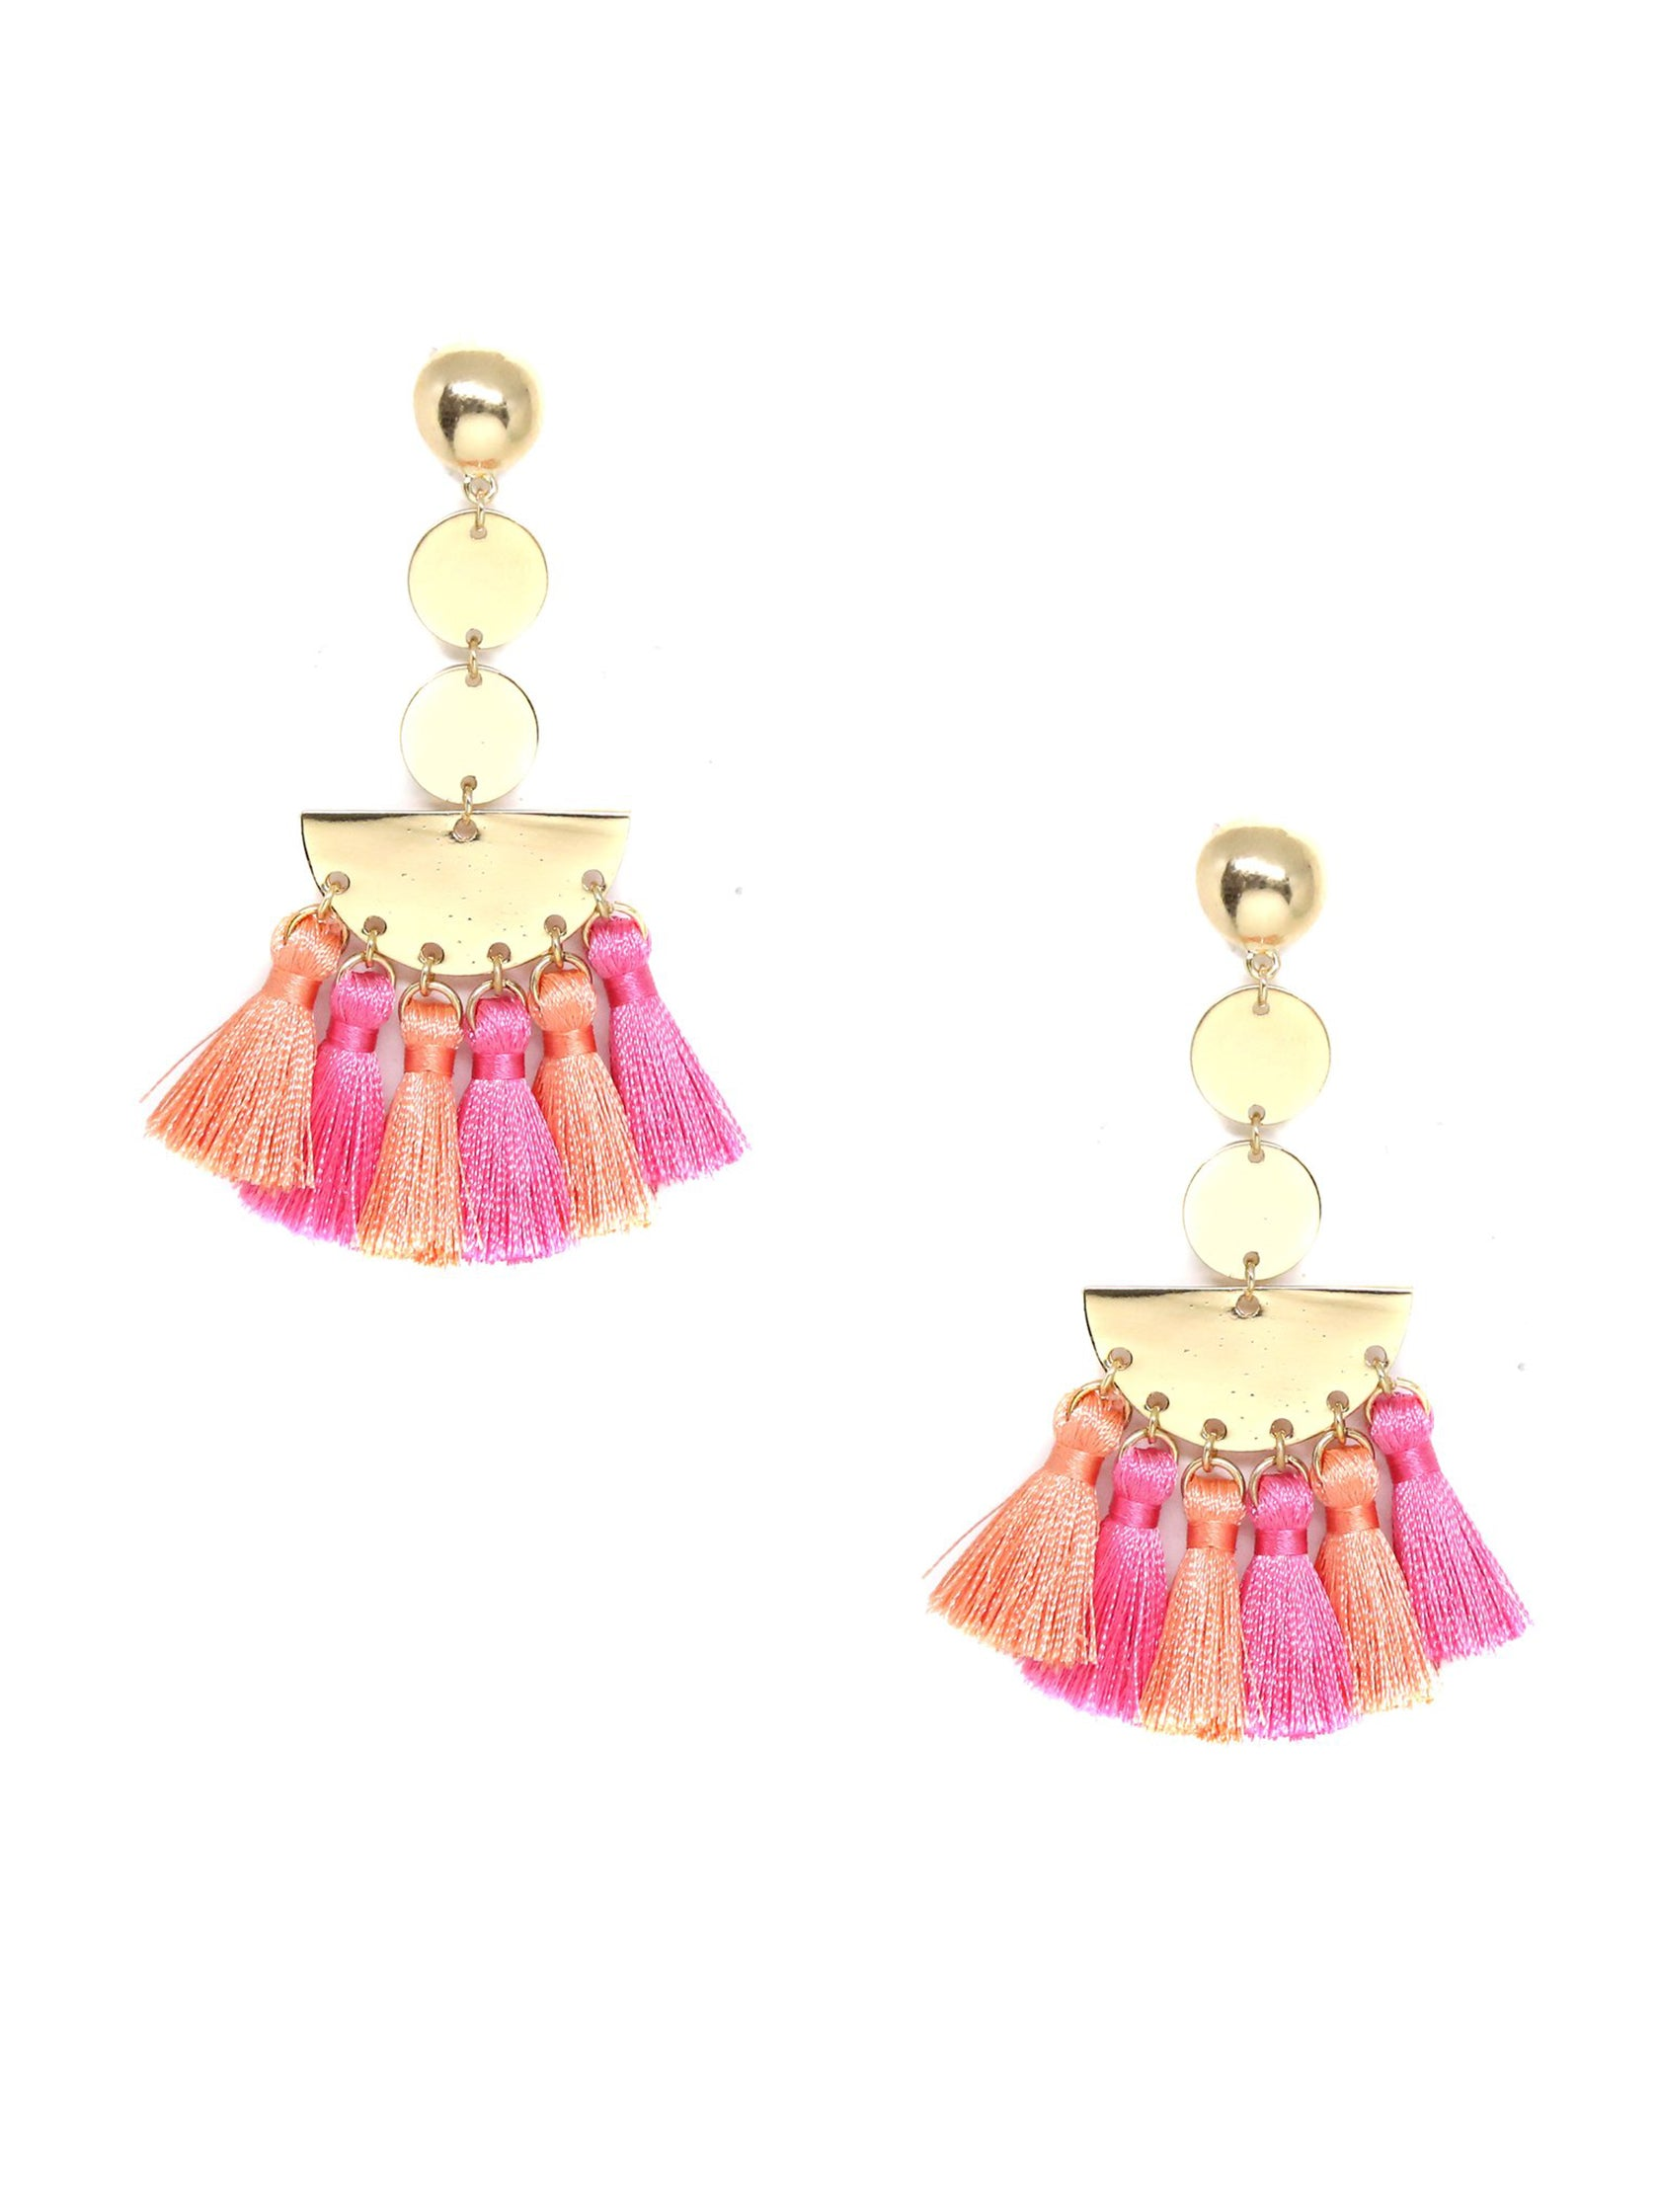 Women outfit in a earrings rental from Ettika called Bianca Earring